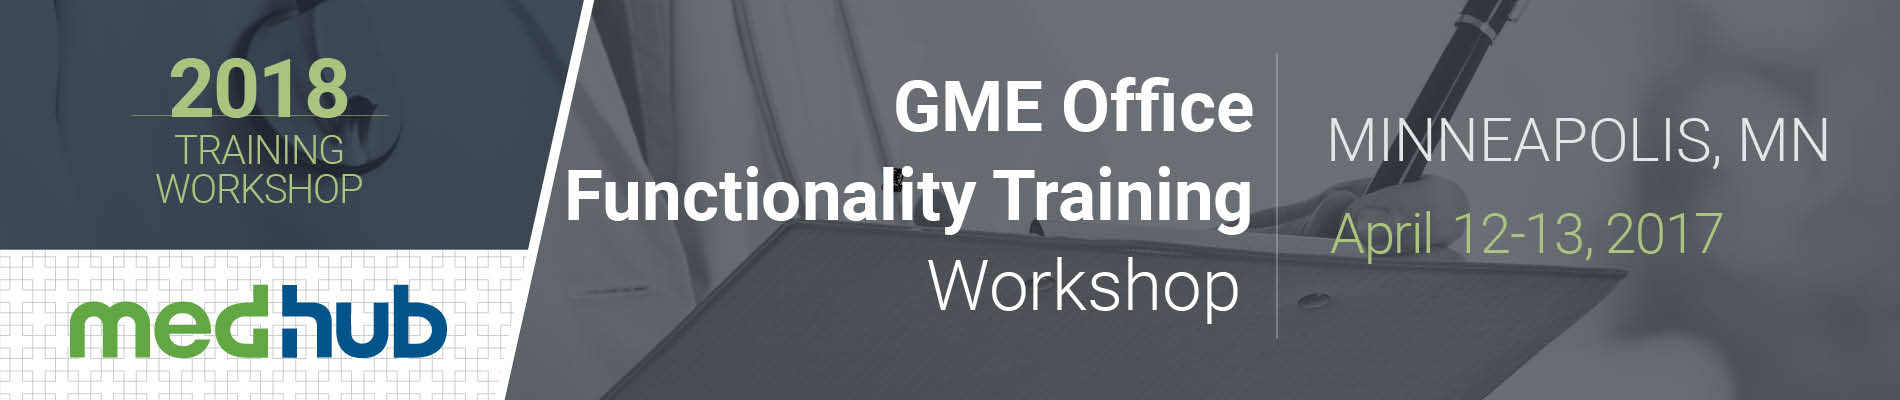 MedHub GME Office Functionality Training Workshop (April 12-13)